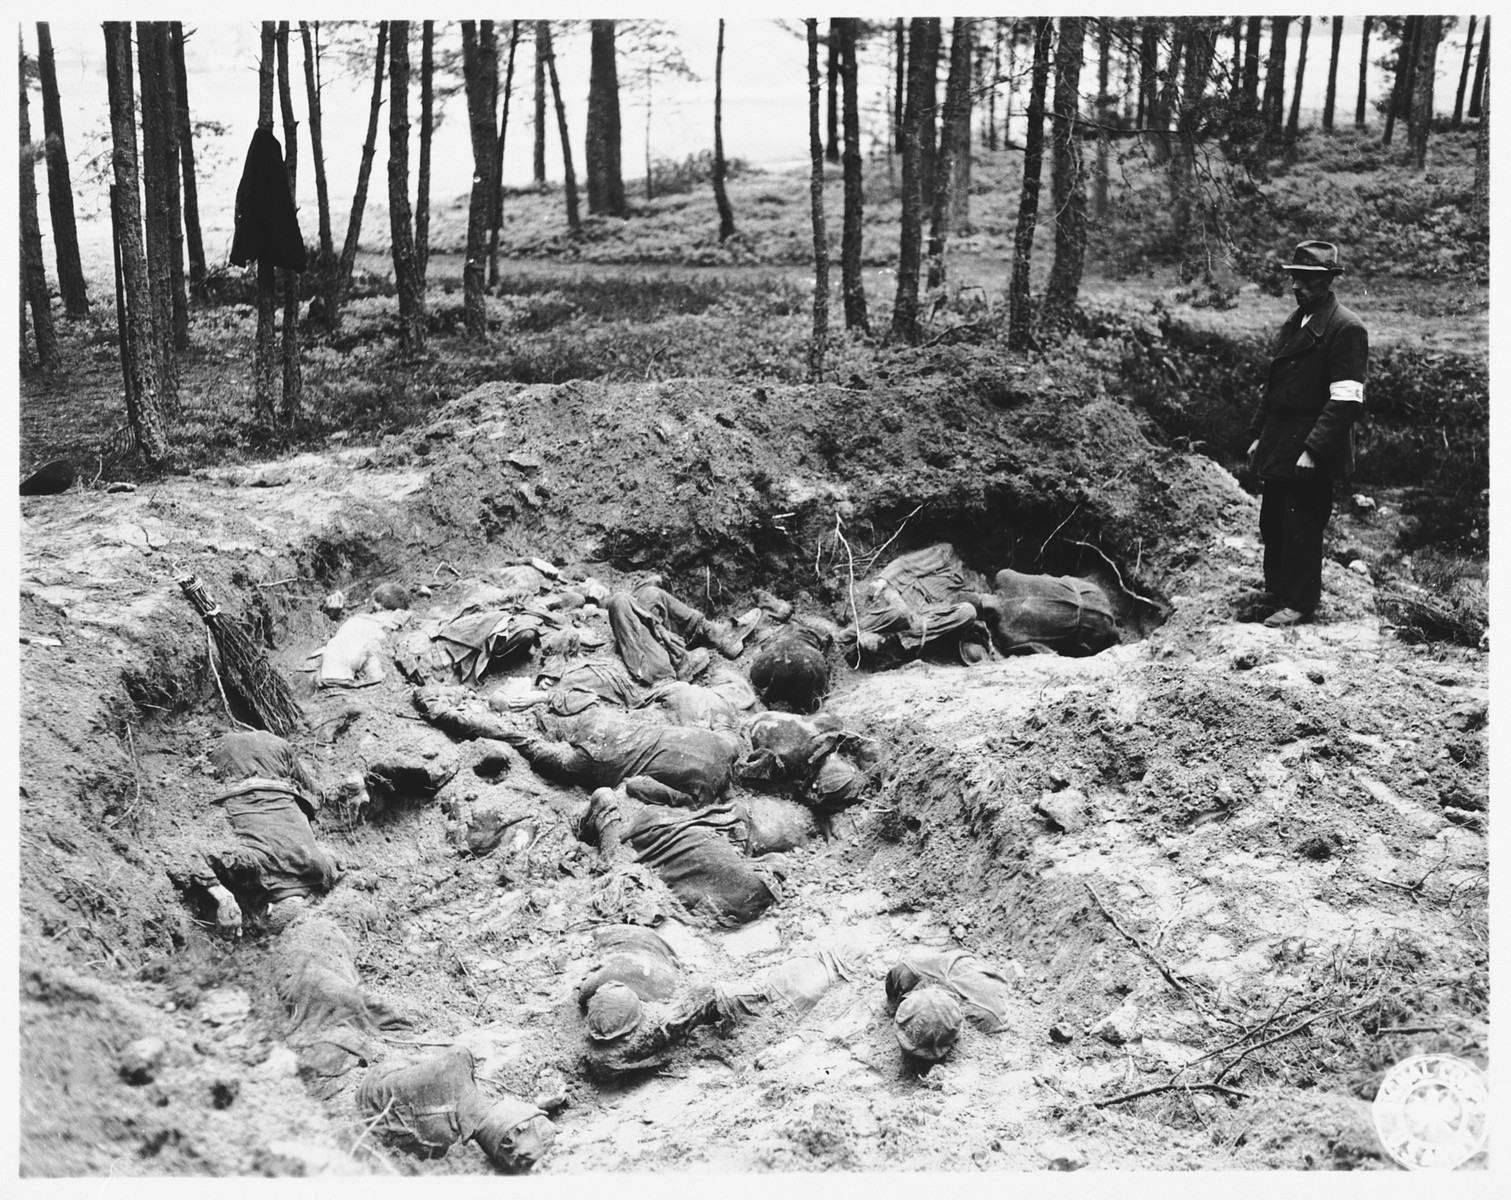 The local Burgomeister views the partially exhumed mass grave in Stamsried, Germany.  (Photograph taken by the 166th Signal Corps Company.)